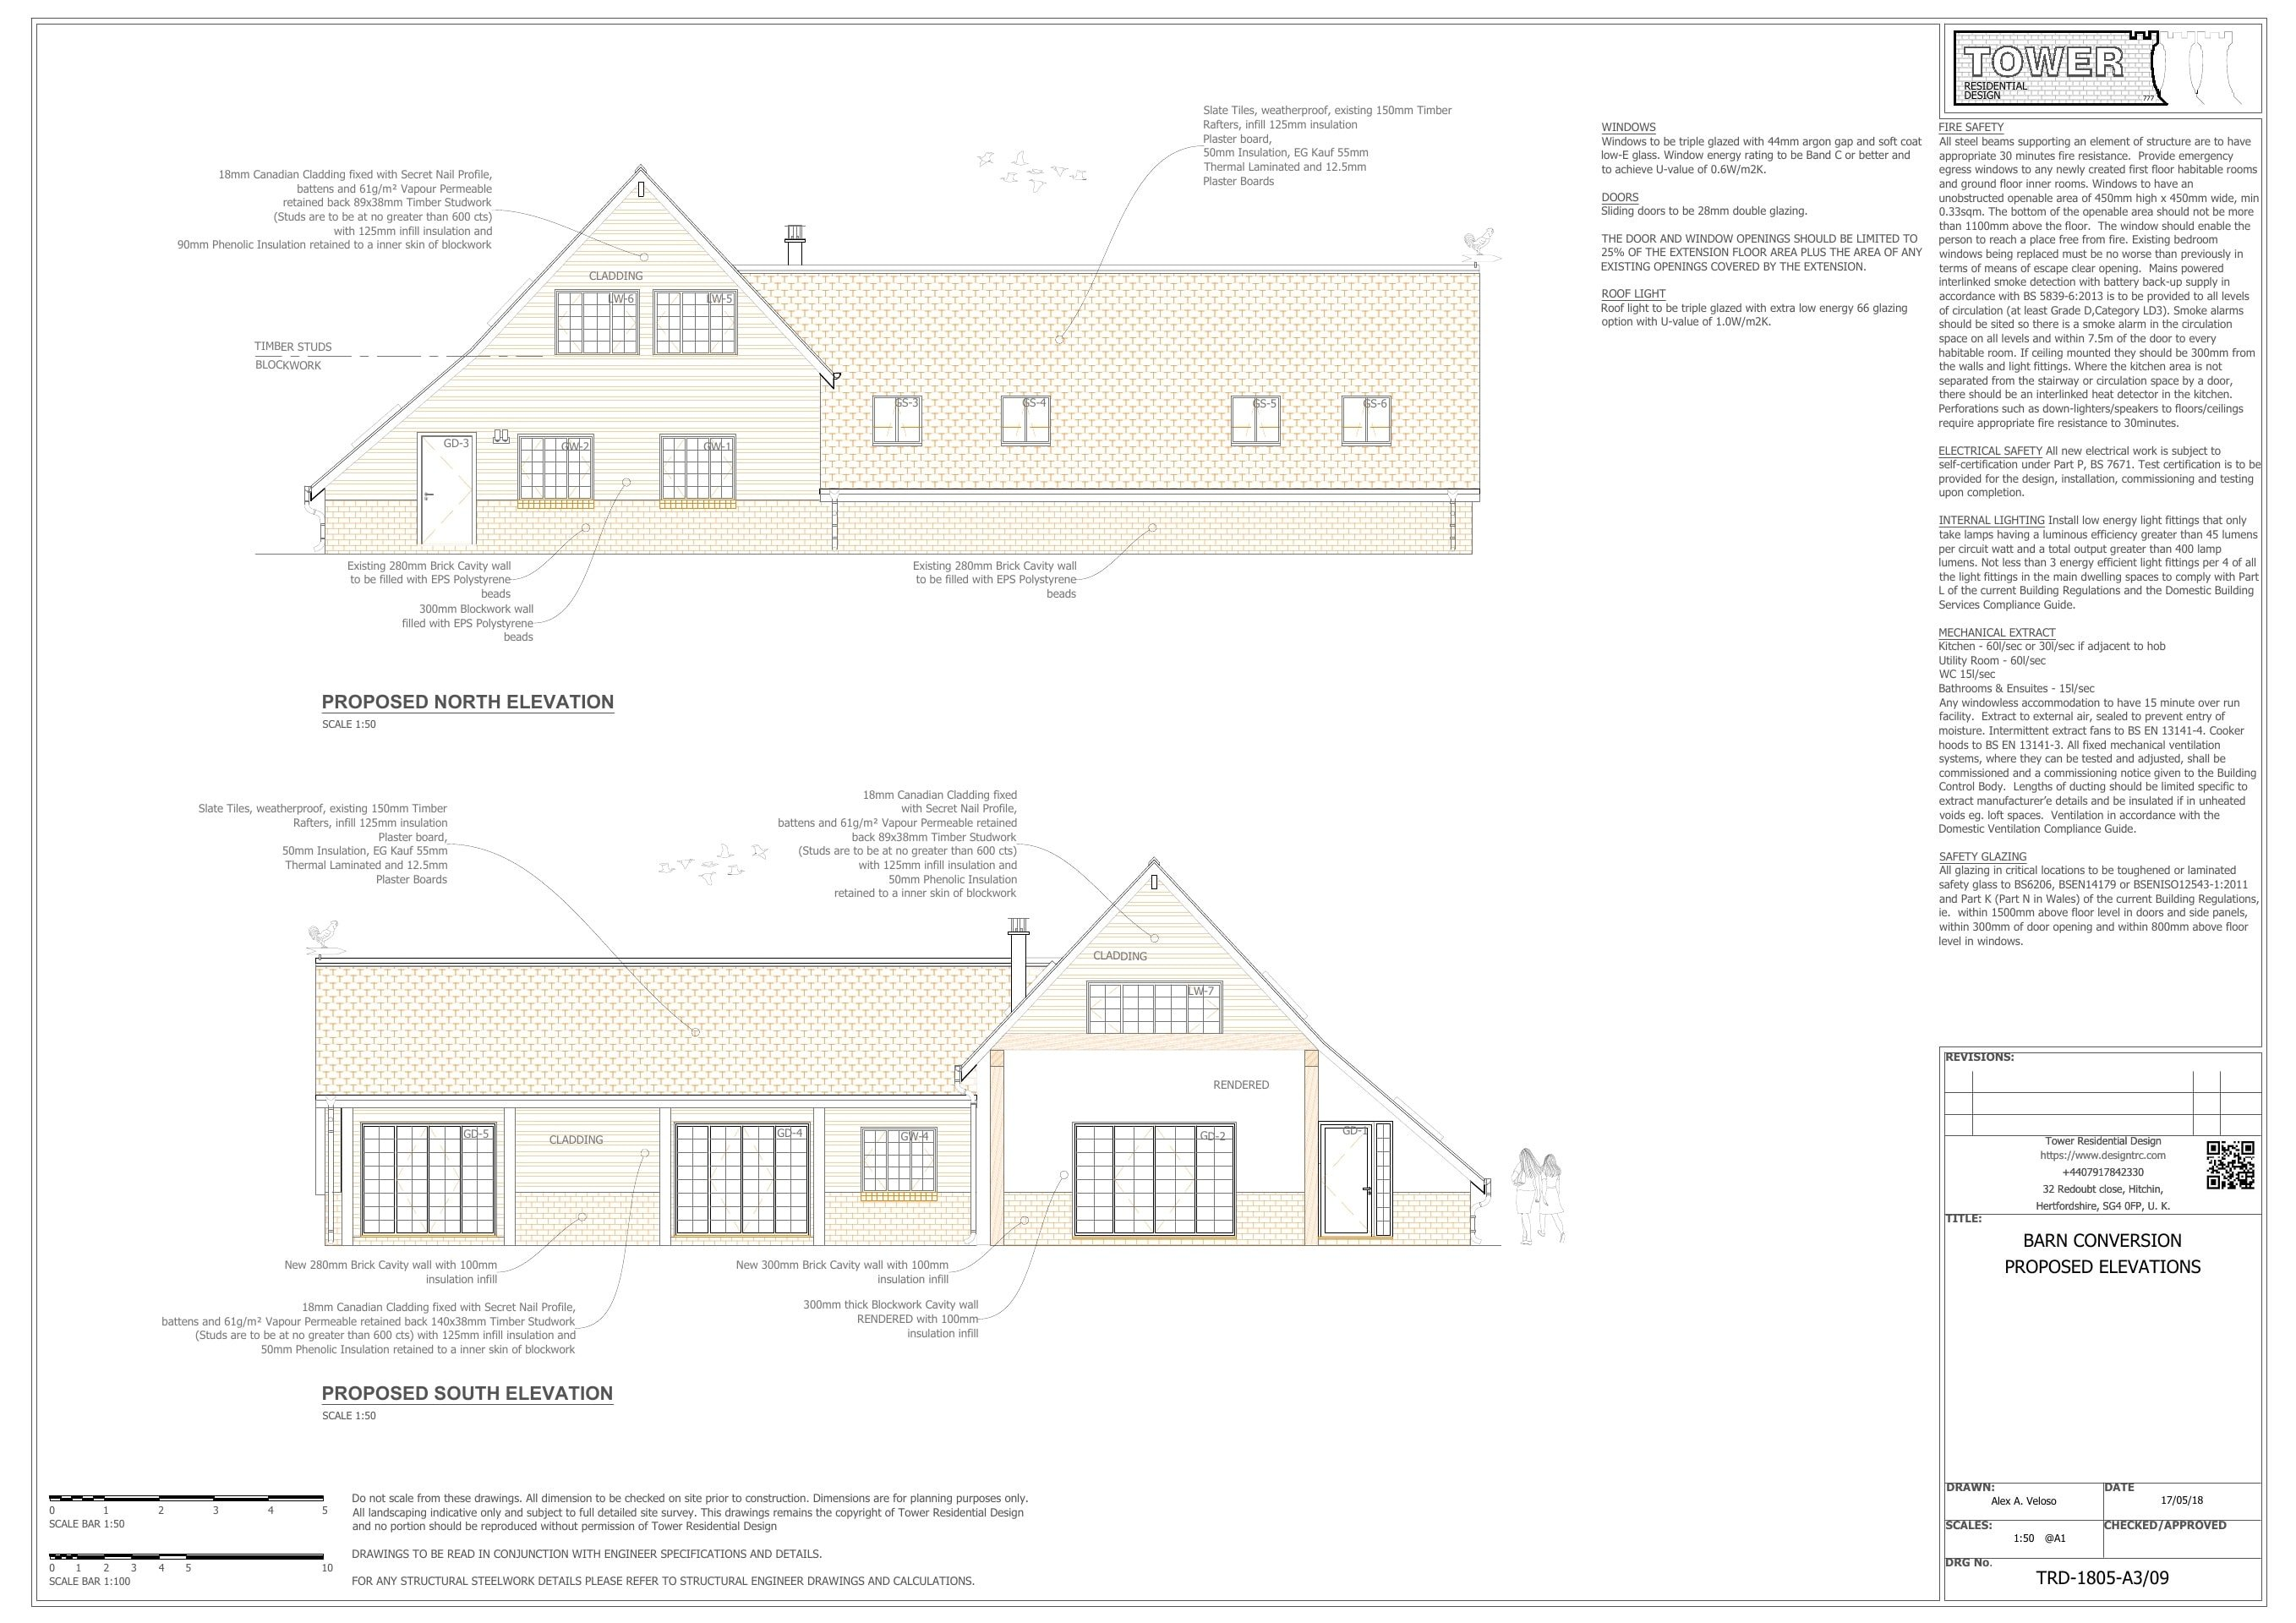 Barn Conversion - Proposed Front and Rear Elevations